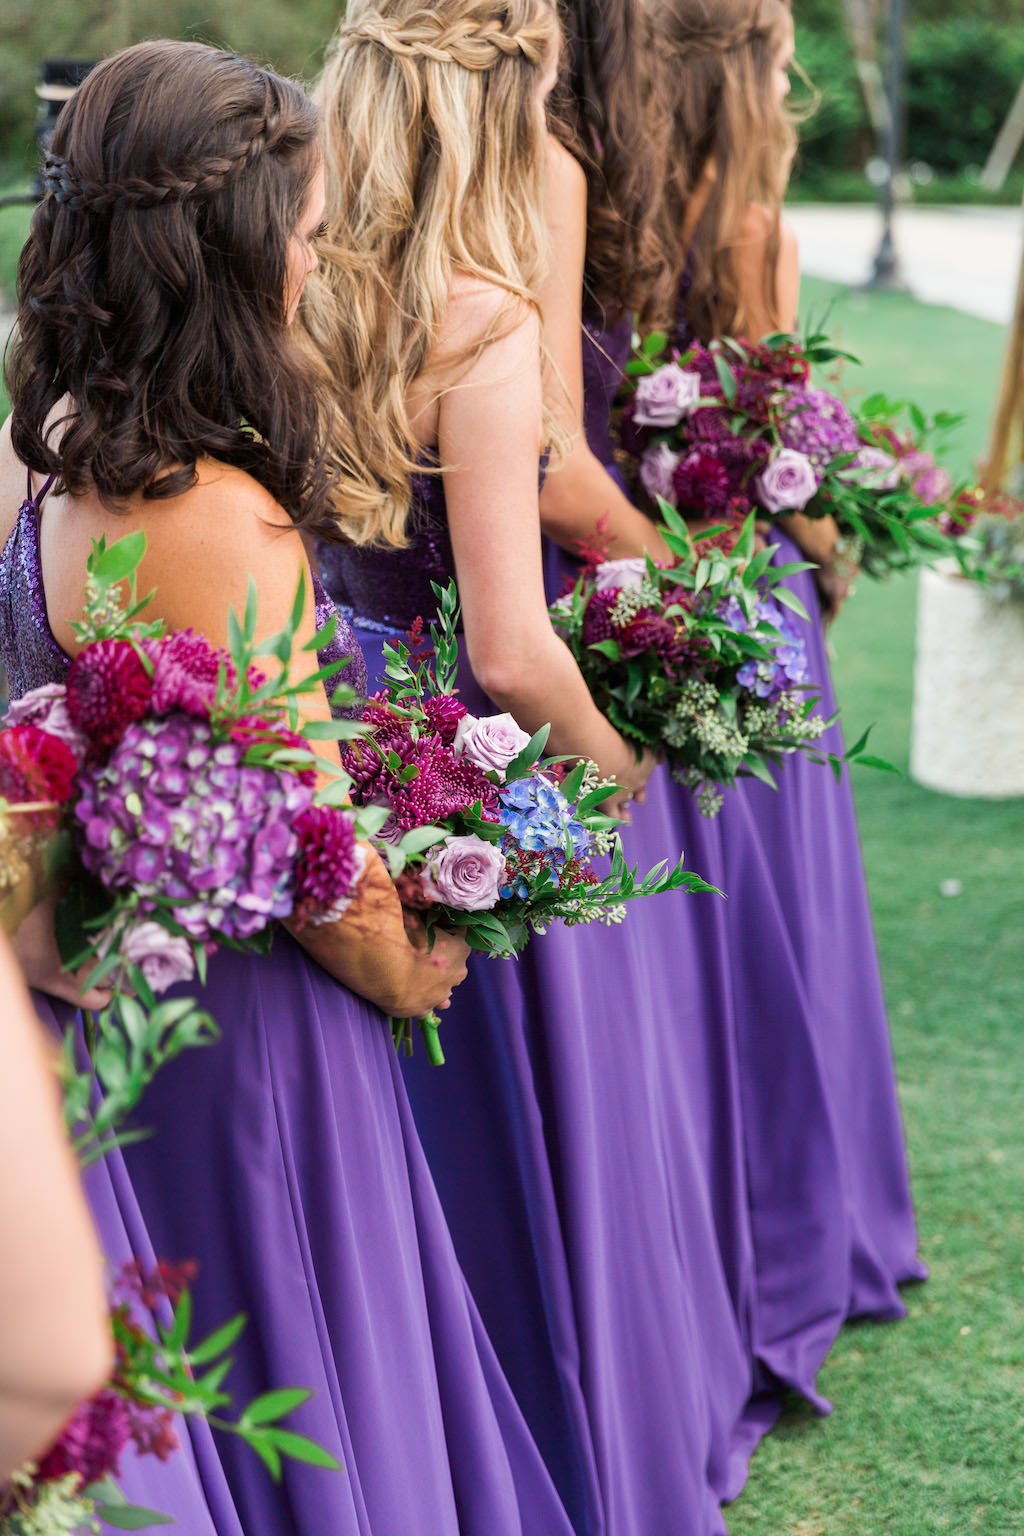 Whimsical Violet Wedding Ceremony Bridesmaid Portrait in Floorlength Jasmine B2 Dresses with Magenta, Purple, and Tropical Greenery Bouquets